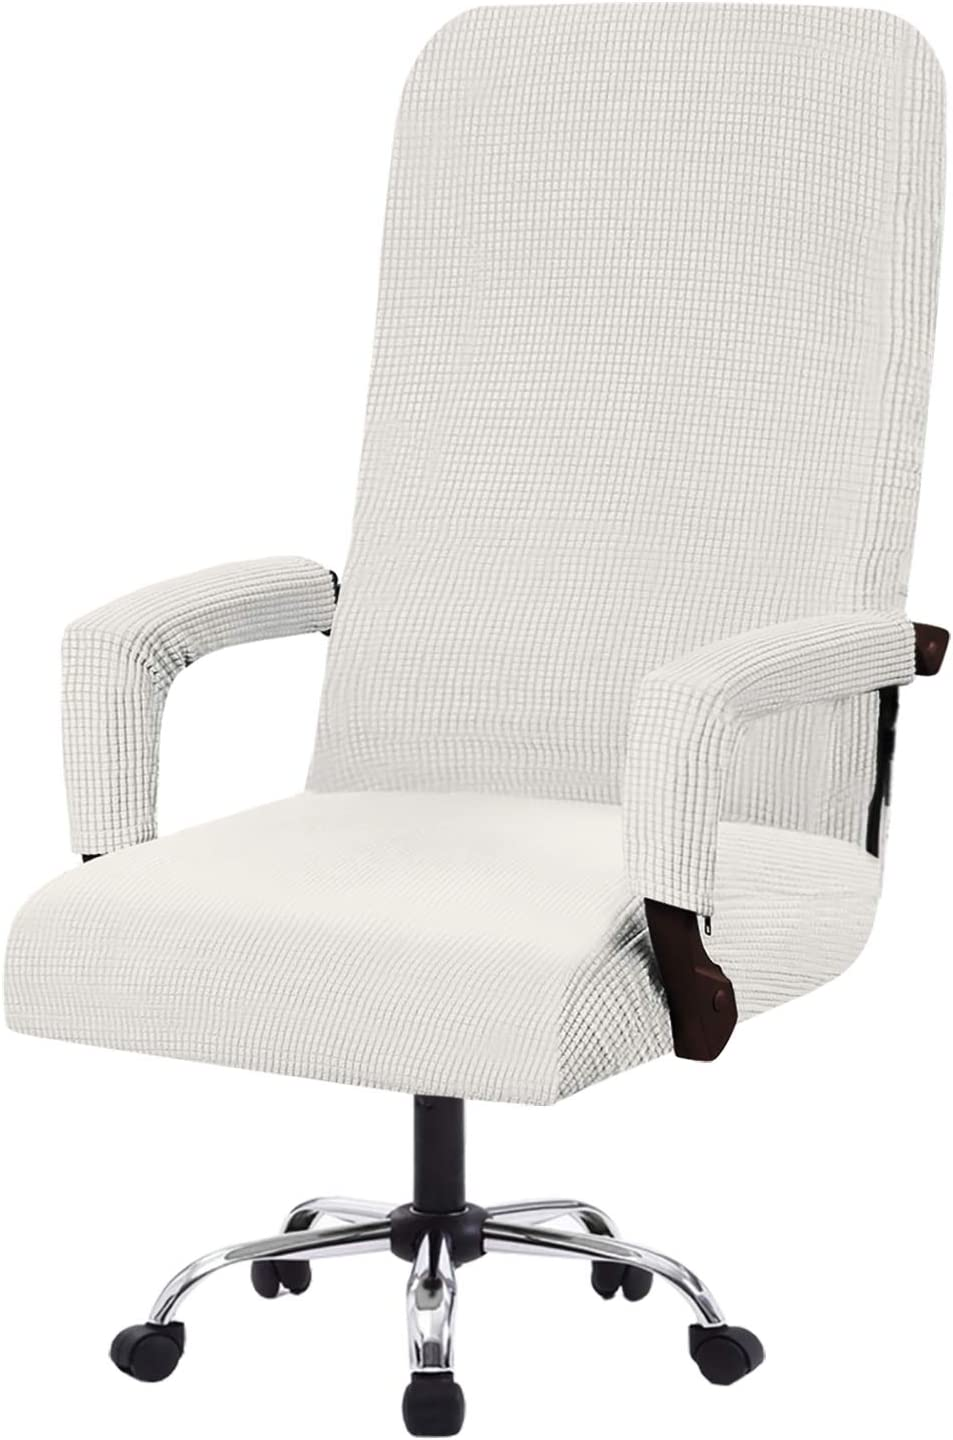 Flamingo P Stretch Office Chair Covers Computer Chair Universal Chair Cover Slipcovers Contemporary High Back Office Chair Covers, Thick Checked Jacquard, 2 Arm Covers (Off White, Medium)